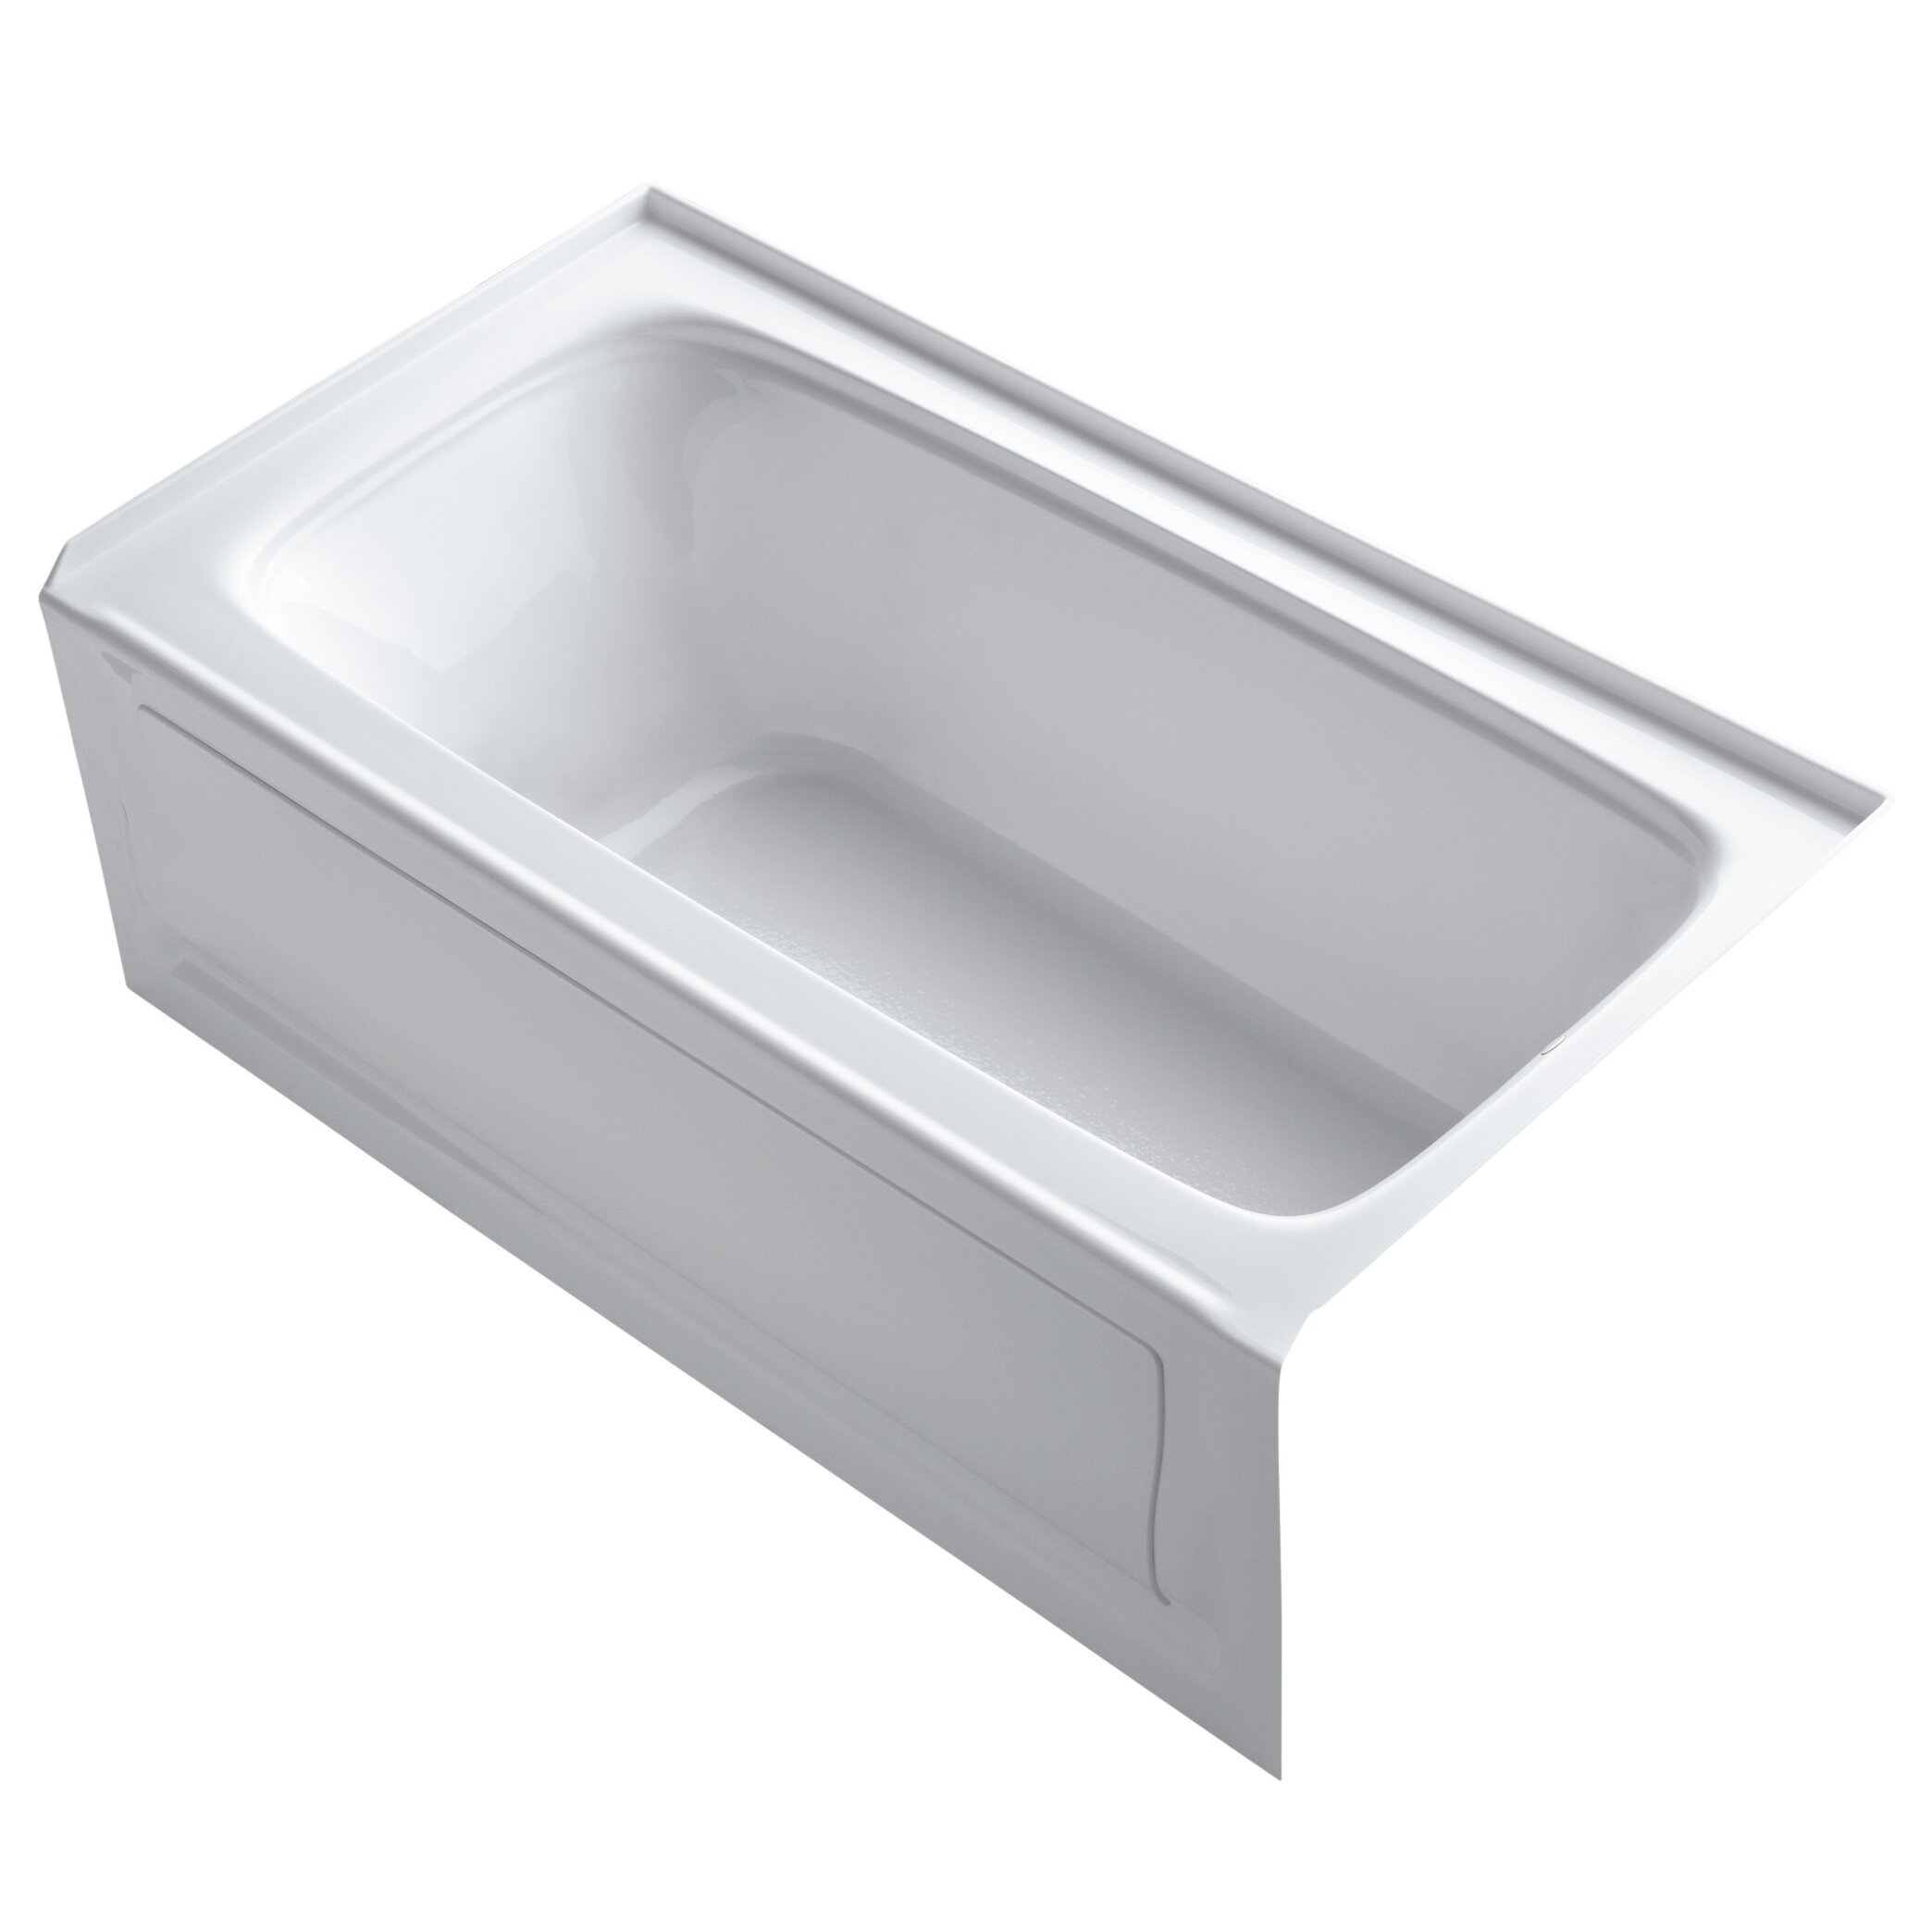 fixtures all bathtubs kohler part k 1150 ra sku koh18996